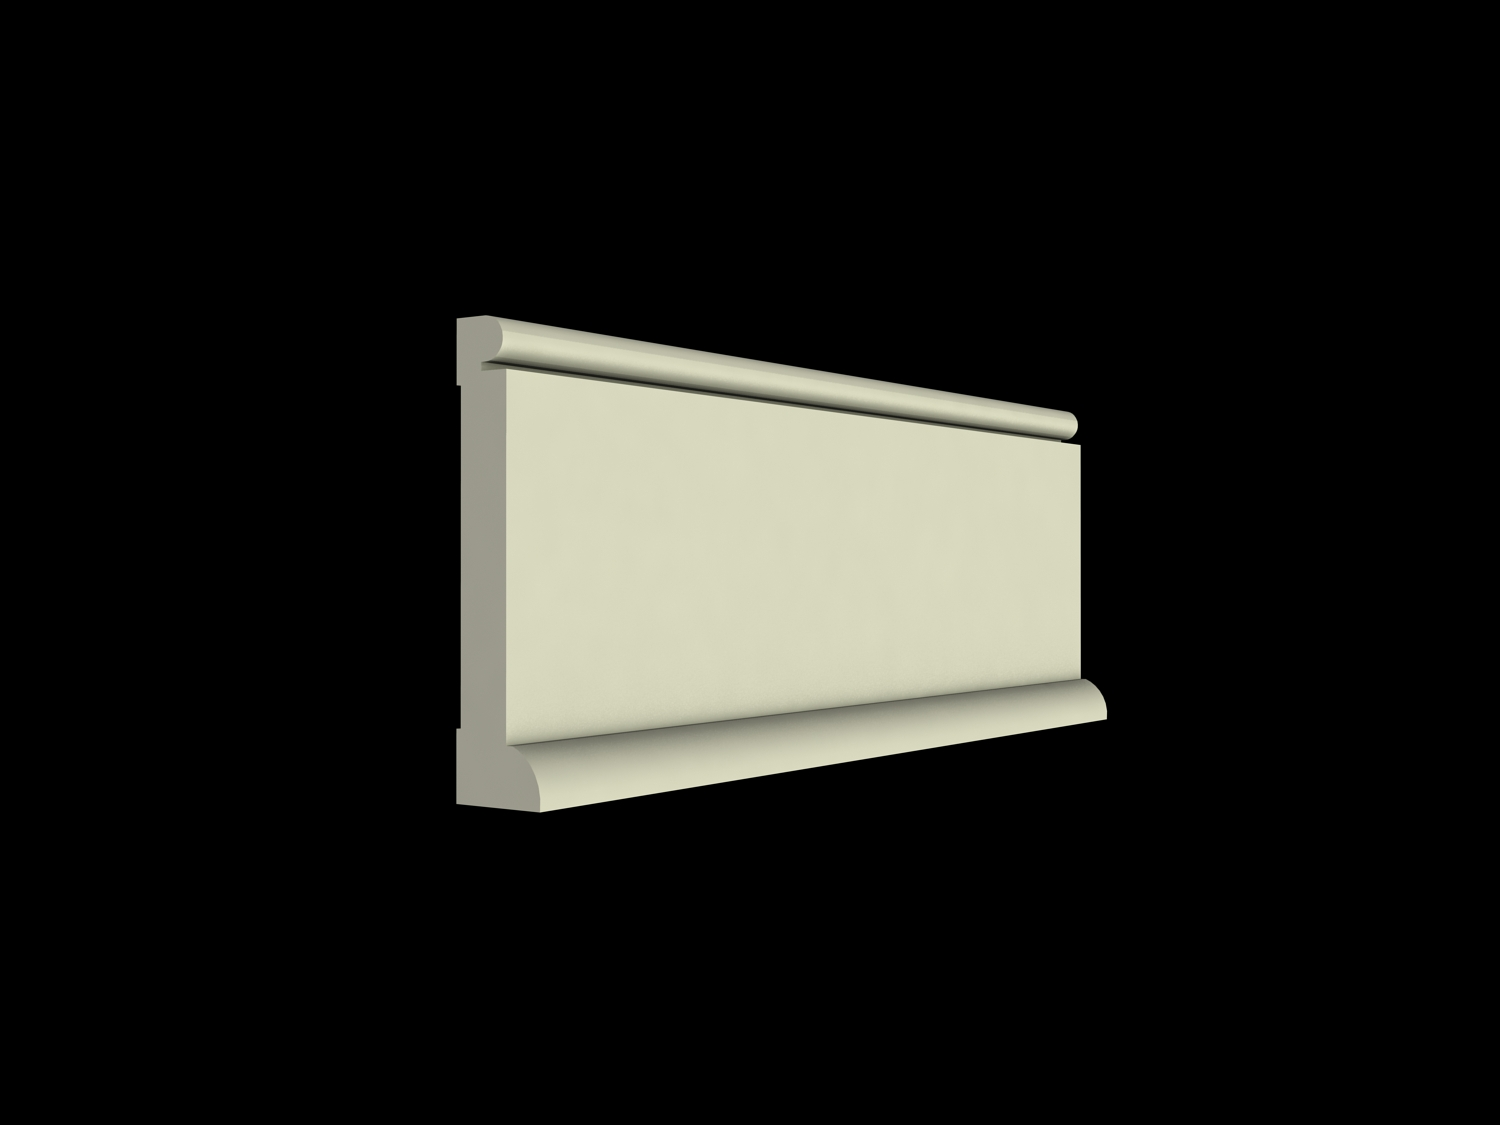 Wainscot solutions inc custom assembled wainscoting - Base Molding Options